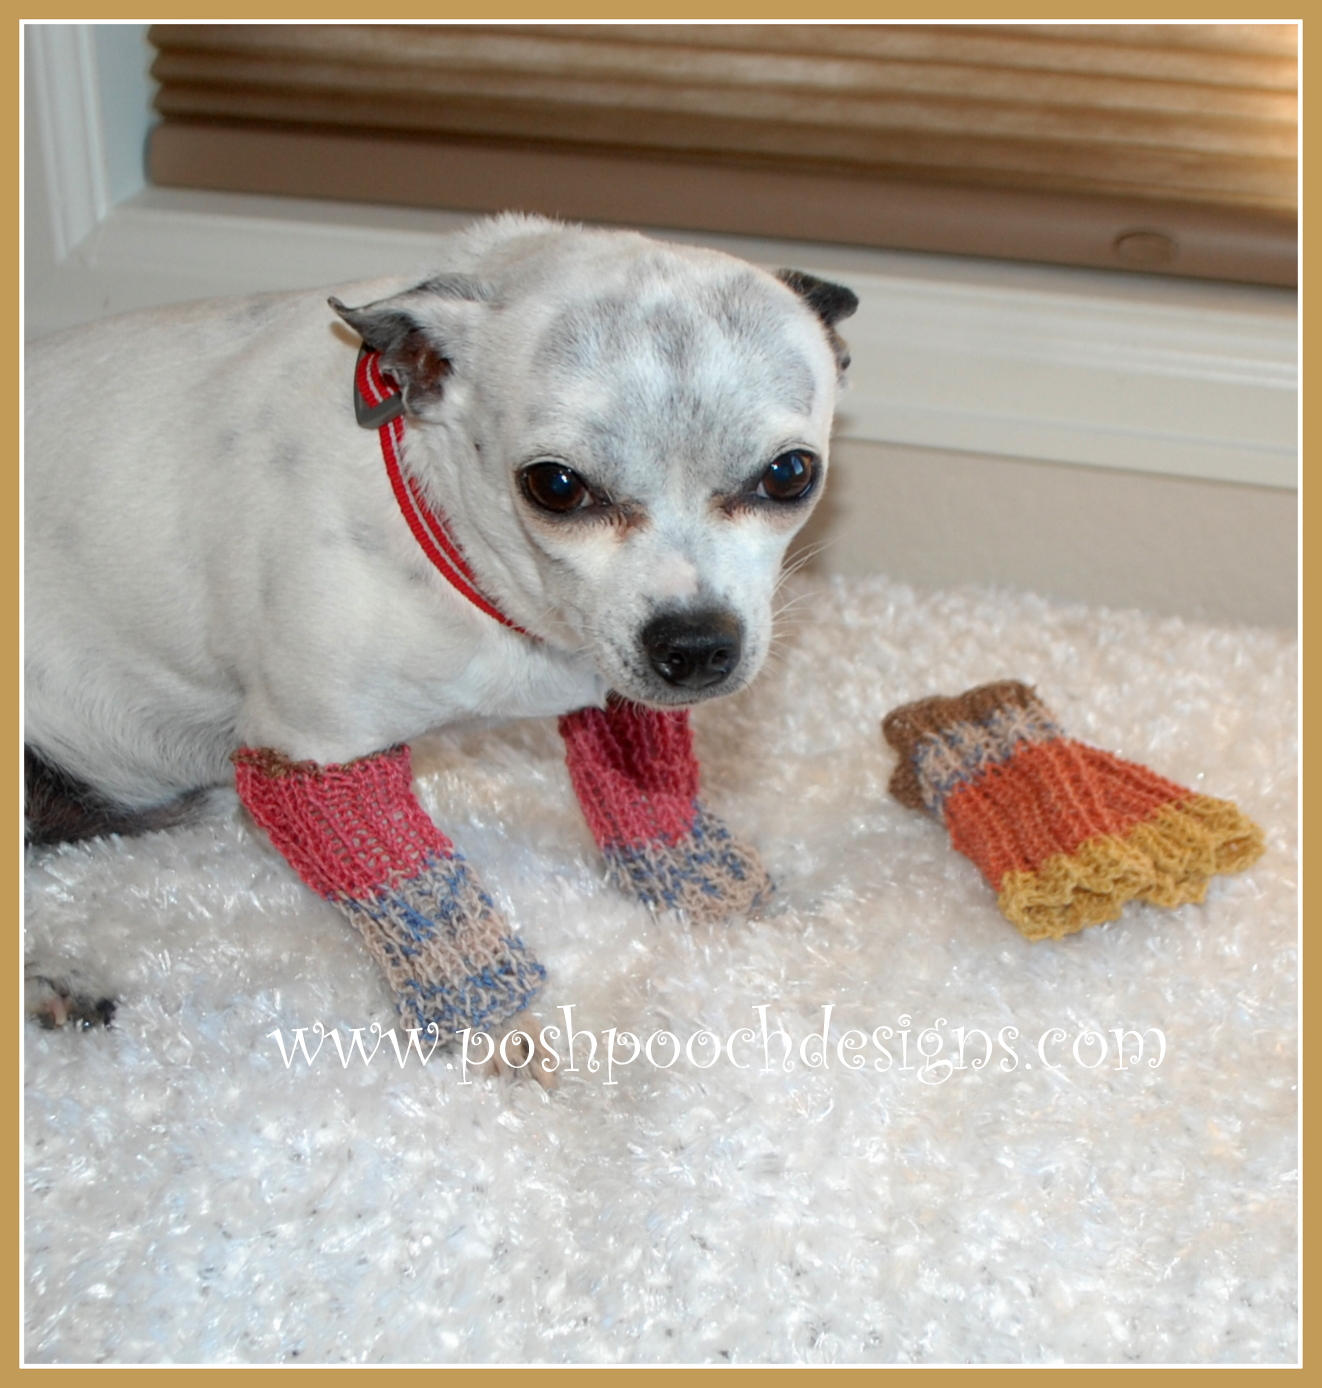 Posh pooch designs dog clothes leg warmers for your dog free and keep his legs warm bankloansurffo Images